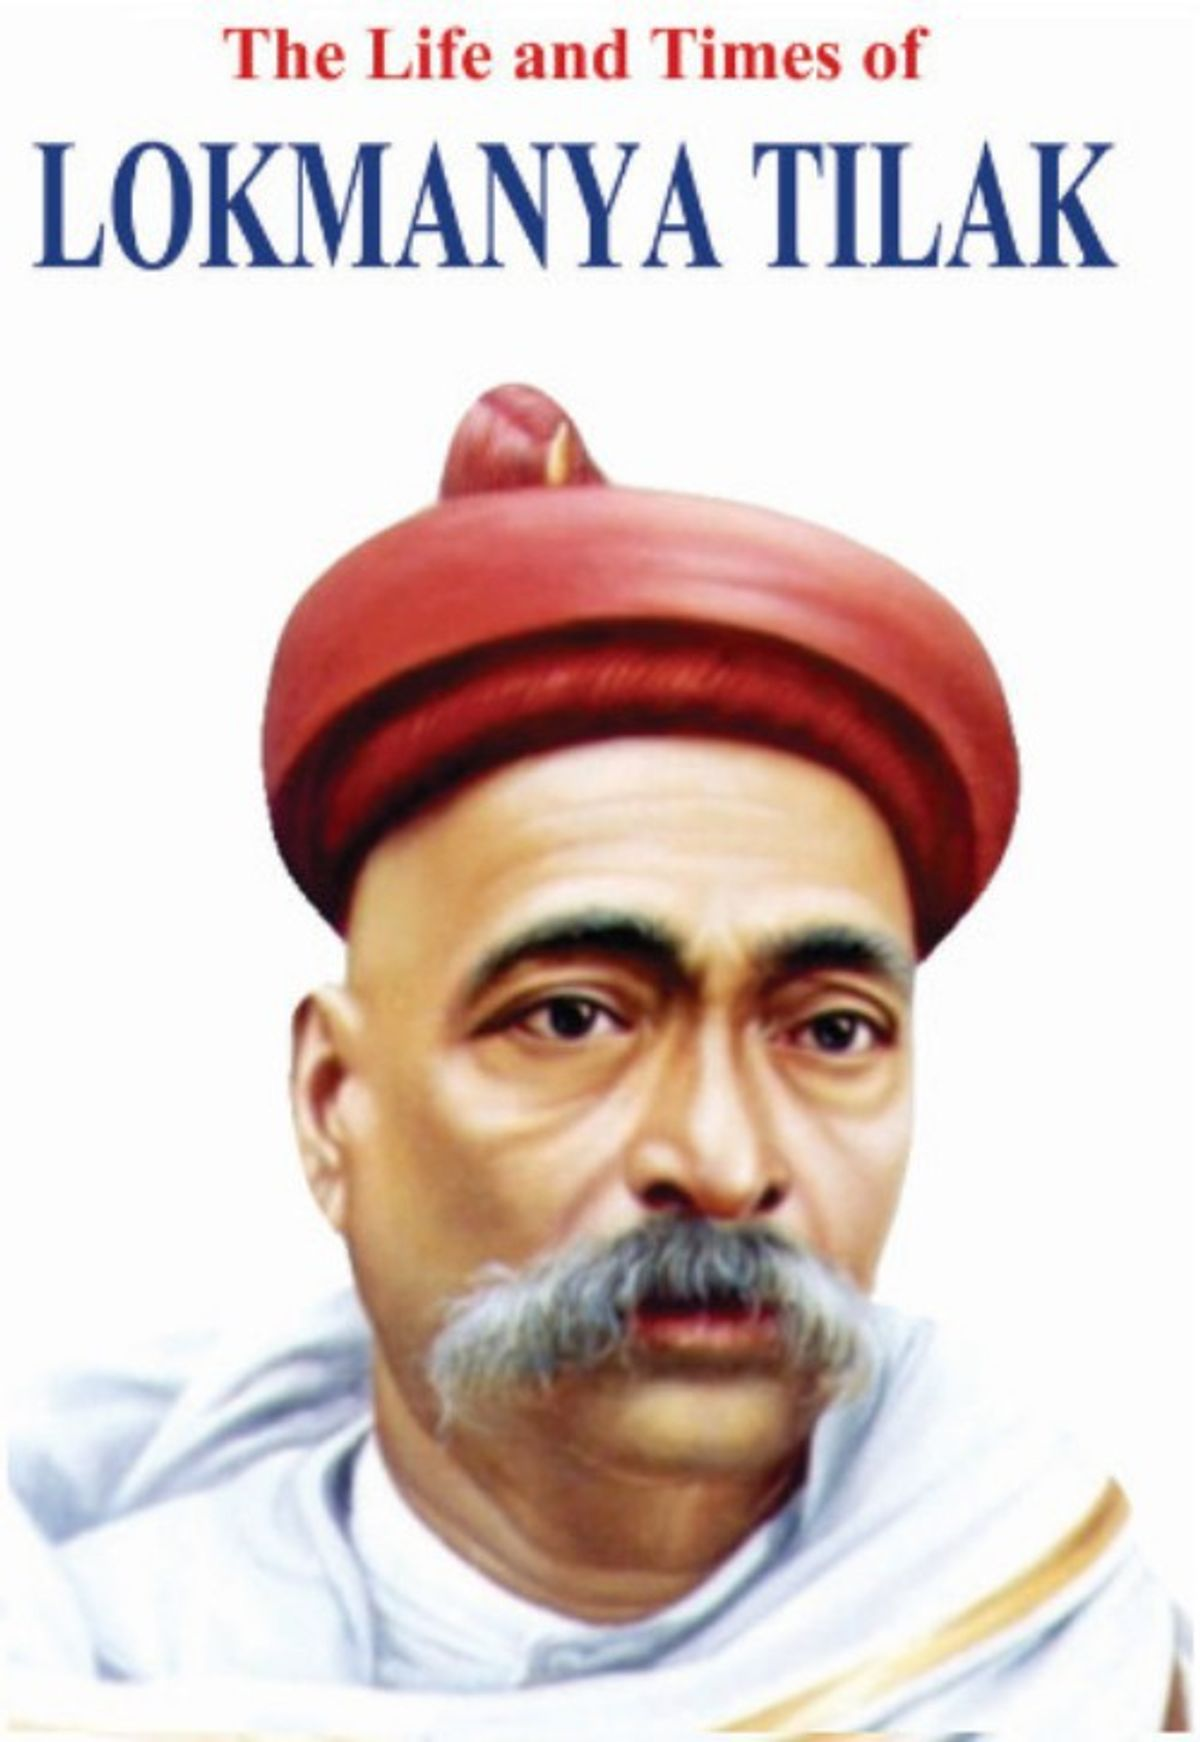 023 Life And Times Of Lokmanya Tilak Essay Incredible Aste Tar In Marathi On Bal Gangadhar Hindi Pdf Full